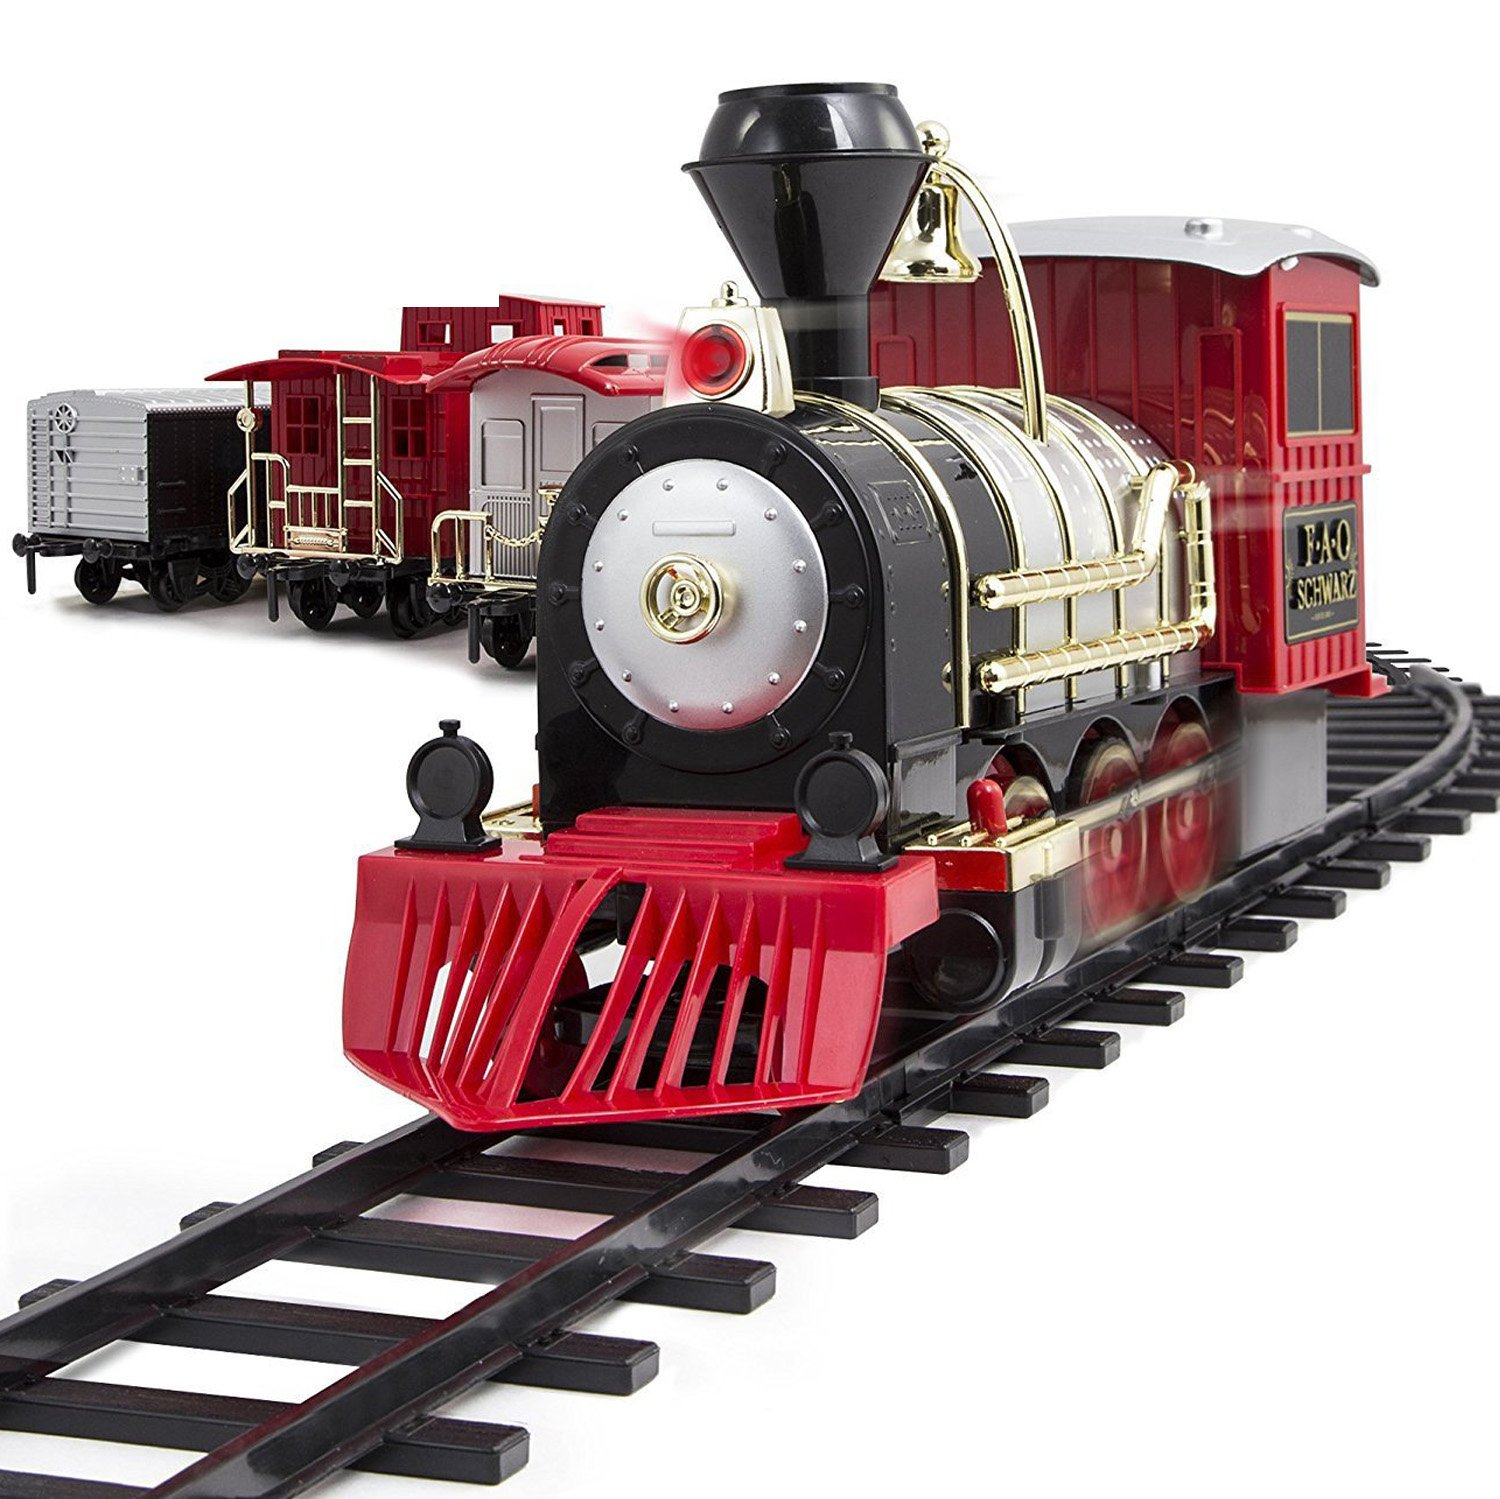 FAO Schwarz Classic Motorized Train Set, 34-Piece Complete Toy Set with  Engine, Cargo, 20 Feet of Modular Tracks, for Children, 4 Unique Train Cars